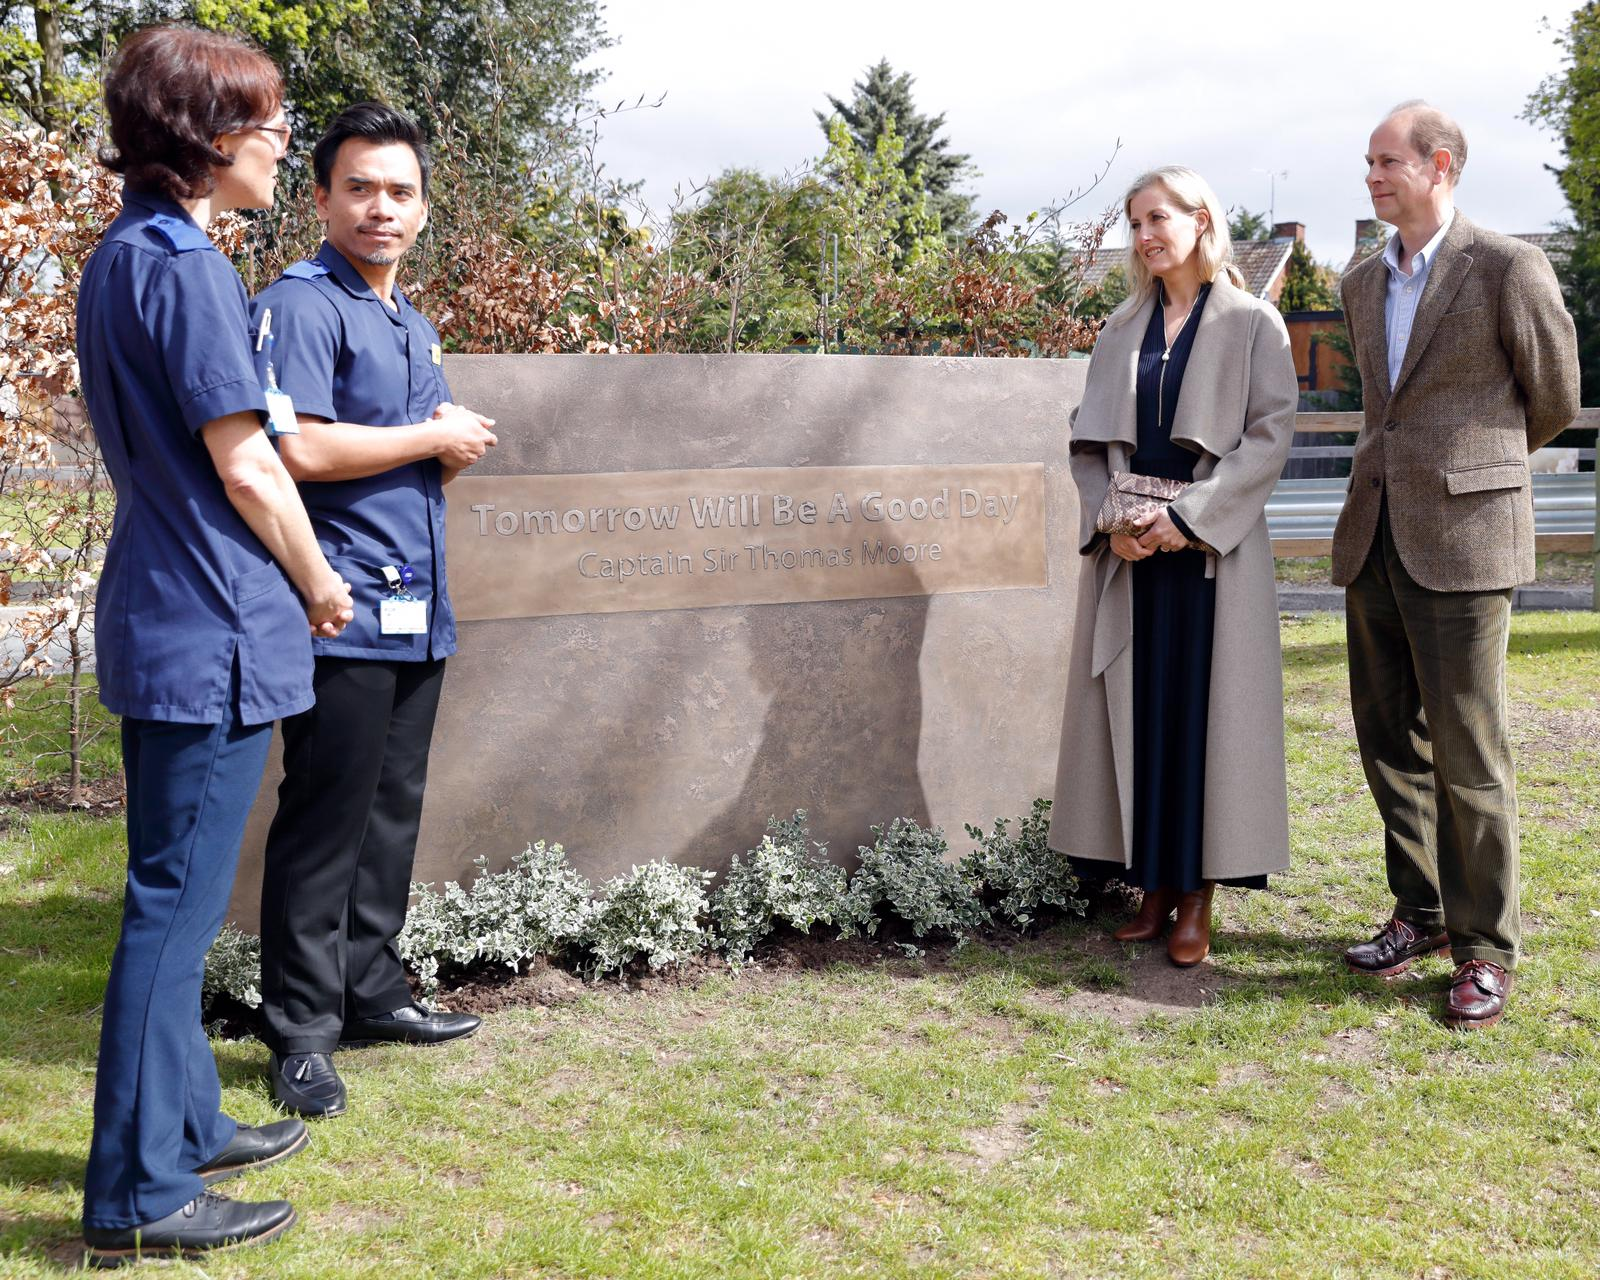 the earl and countess of wessex stand next to a stone plinth reading 'tomorrow will be a good day', the saying of captain tom moore. edward and sophie stand on the right, wearing a tweed jacket and grey long coat respectively, as they chat to two nurses in uniform